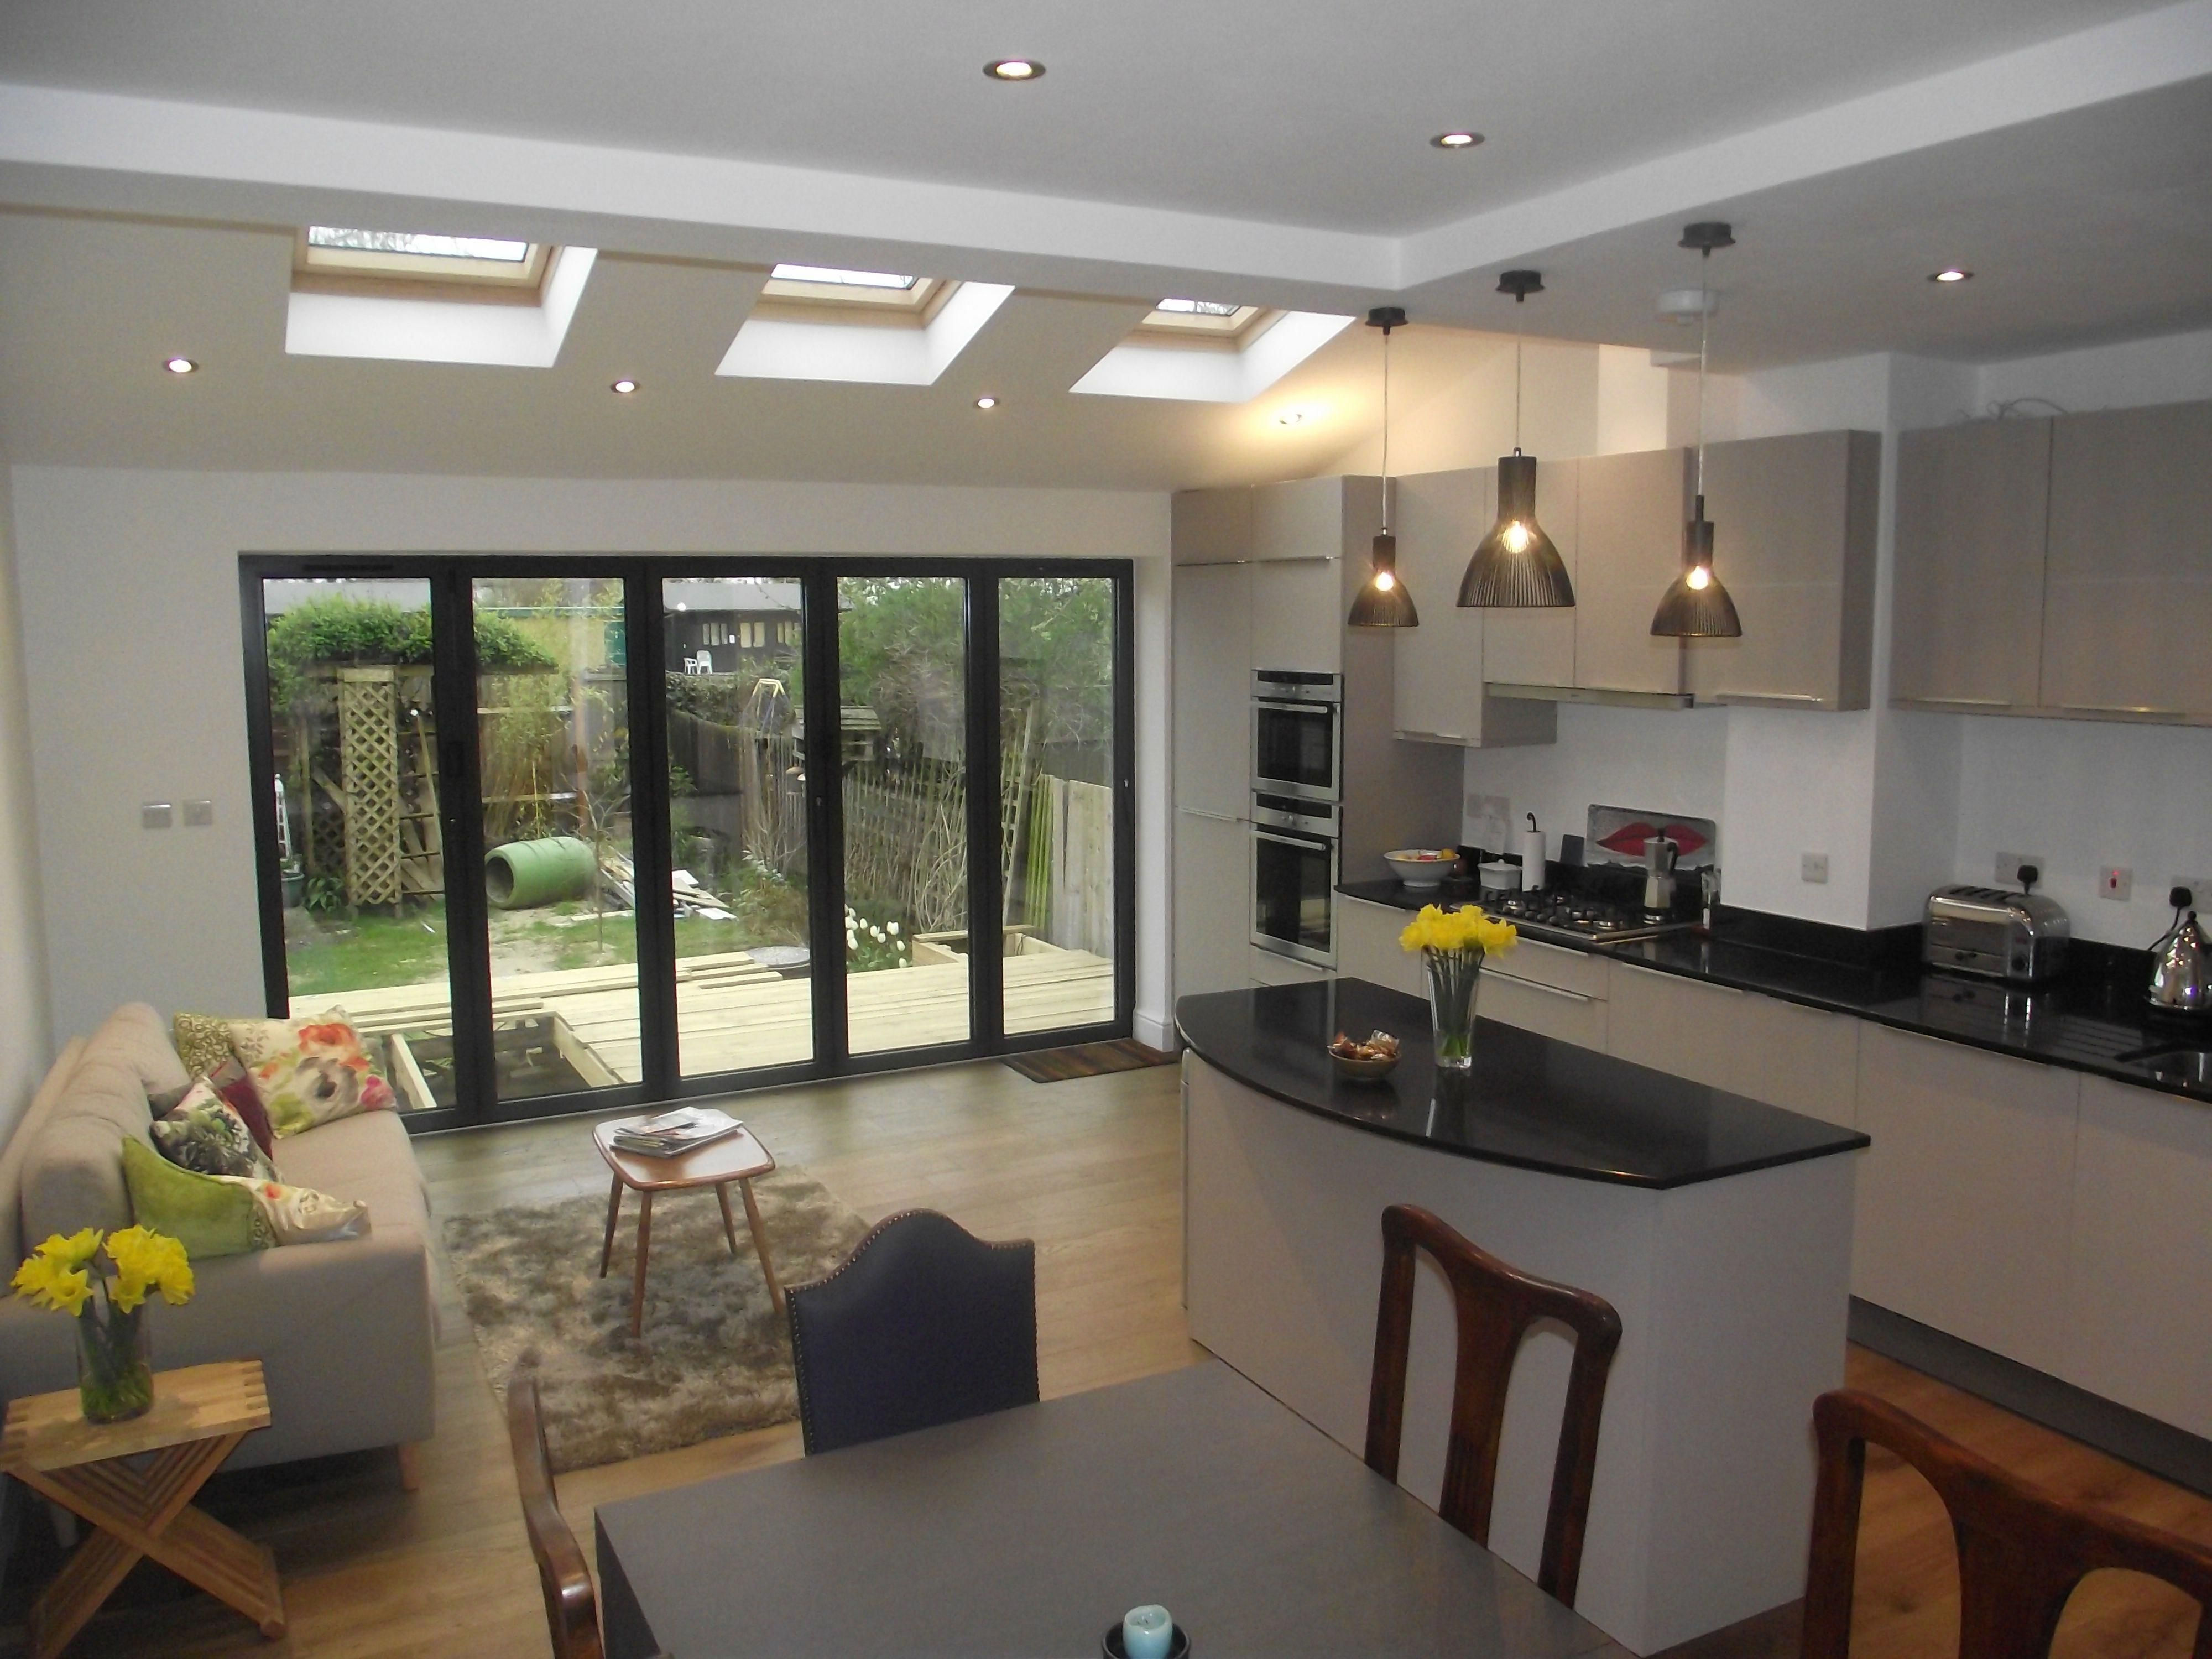 House Extension Ideas Designs House Extension Photo Gallery Roofingid Modern Kitchen Remodel Open Plan Kitchen Dining Living Open Plan Kitchen Living Room